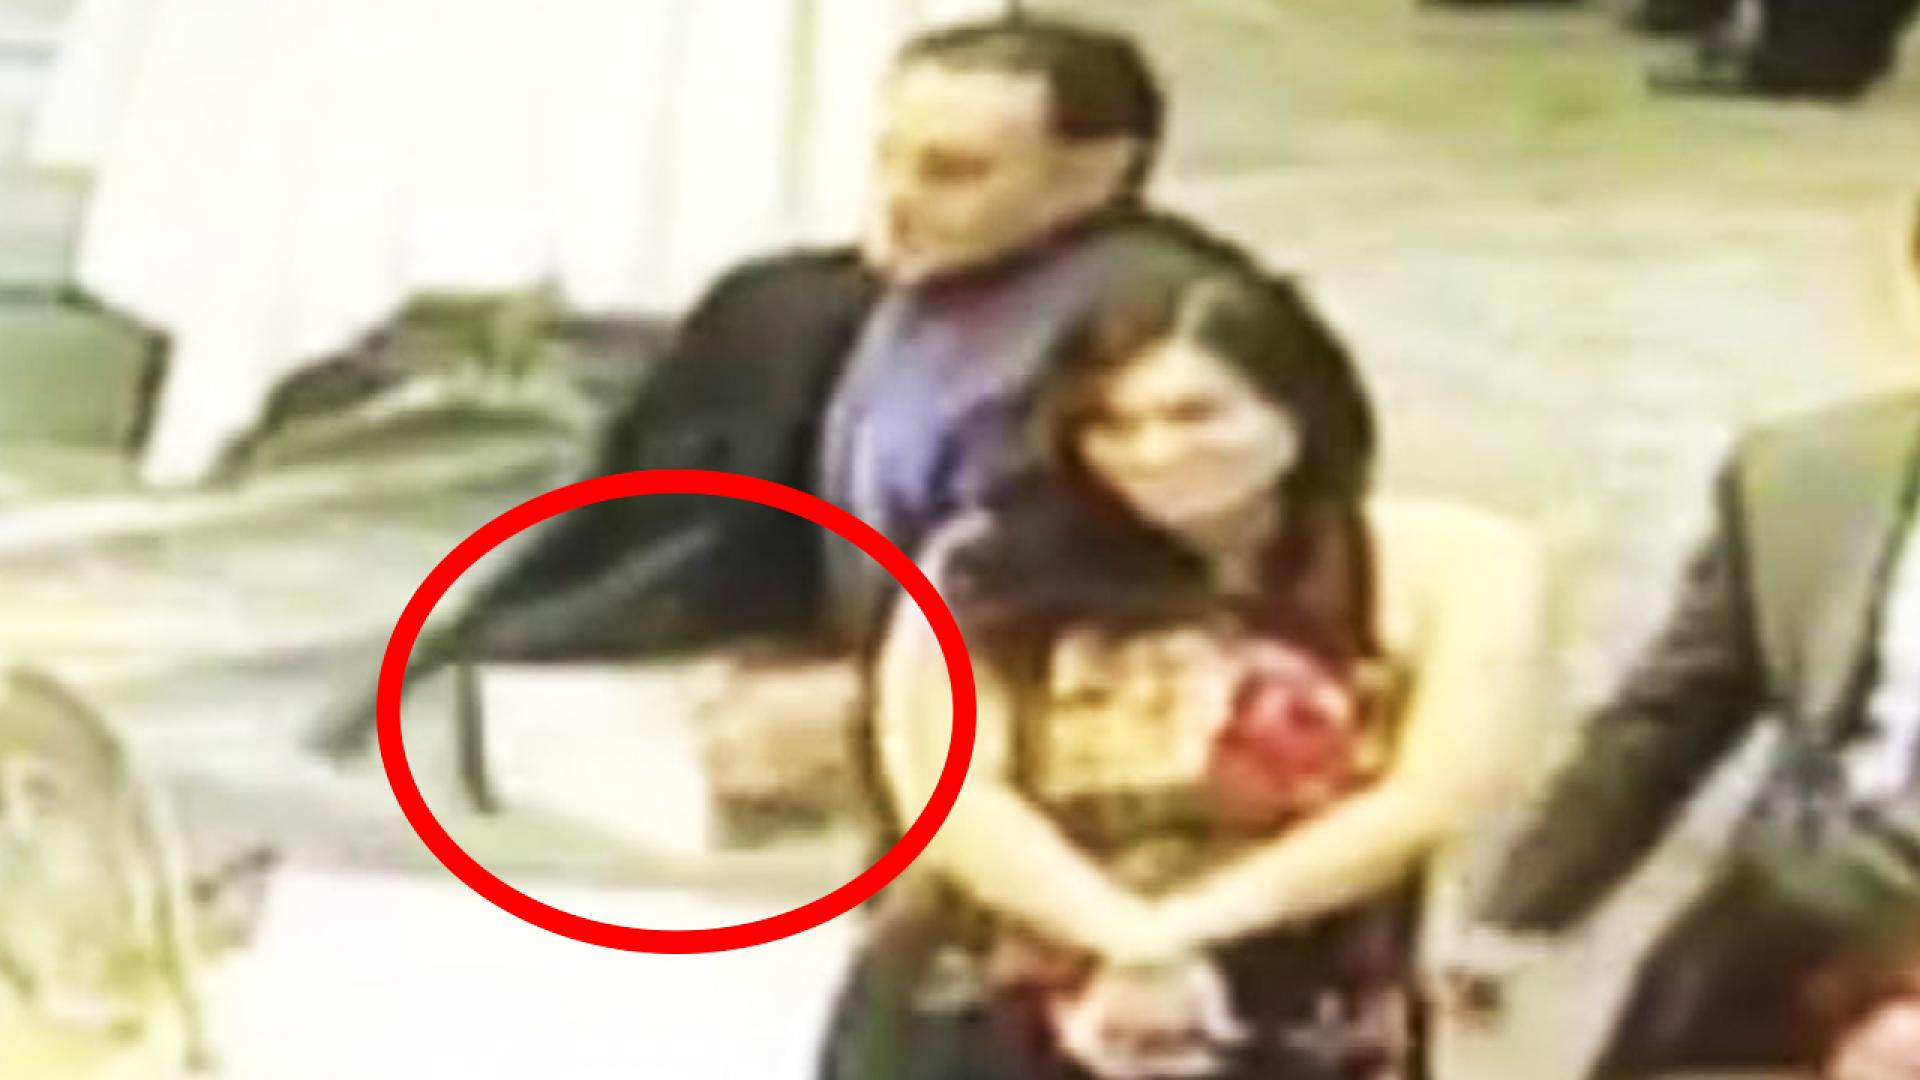 Real Life Wedding Crasher Caught Stealing Gifts During Reception